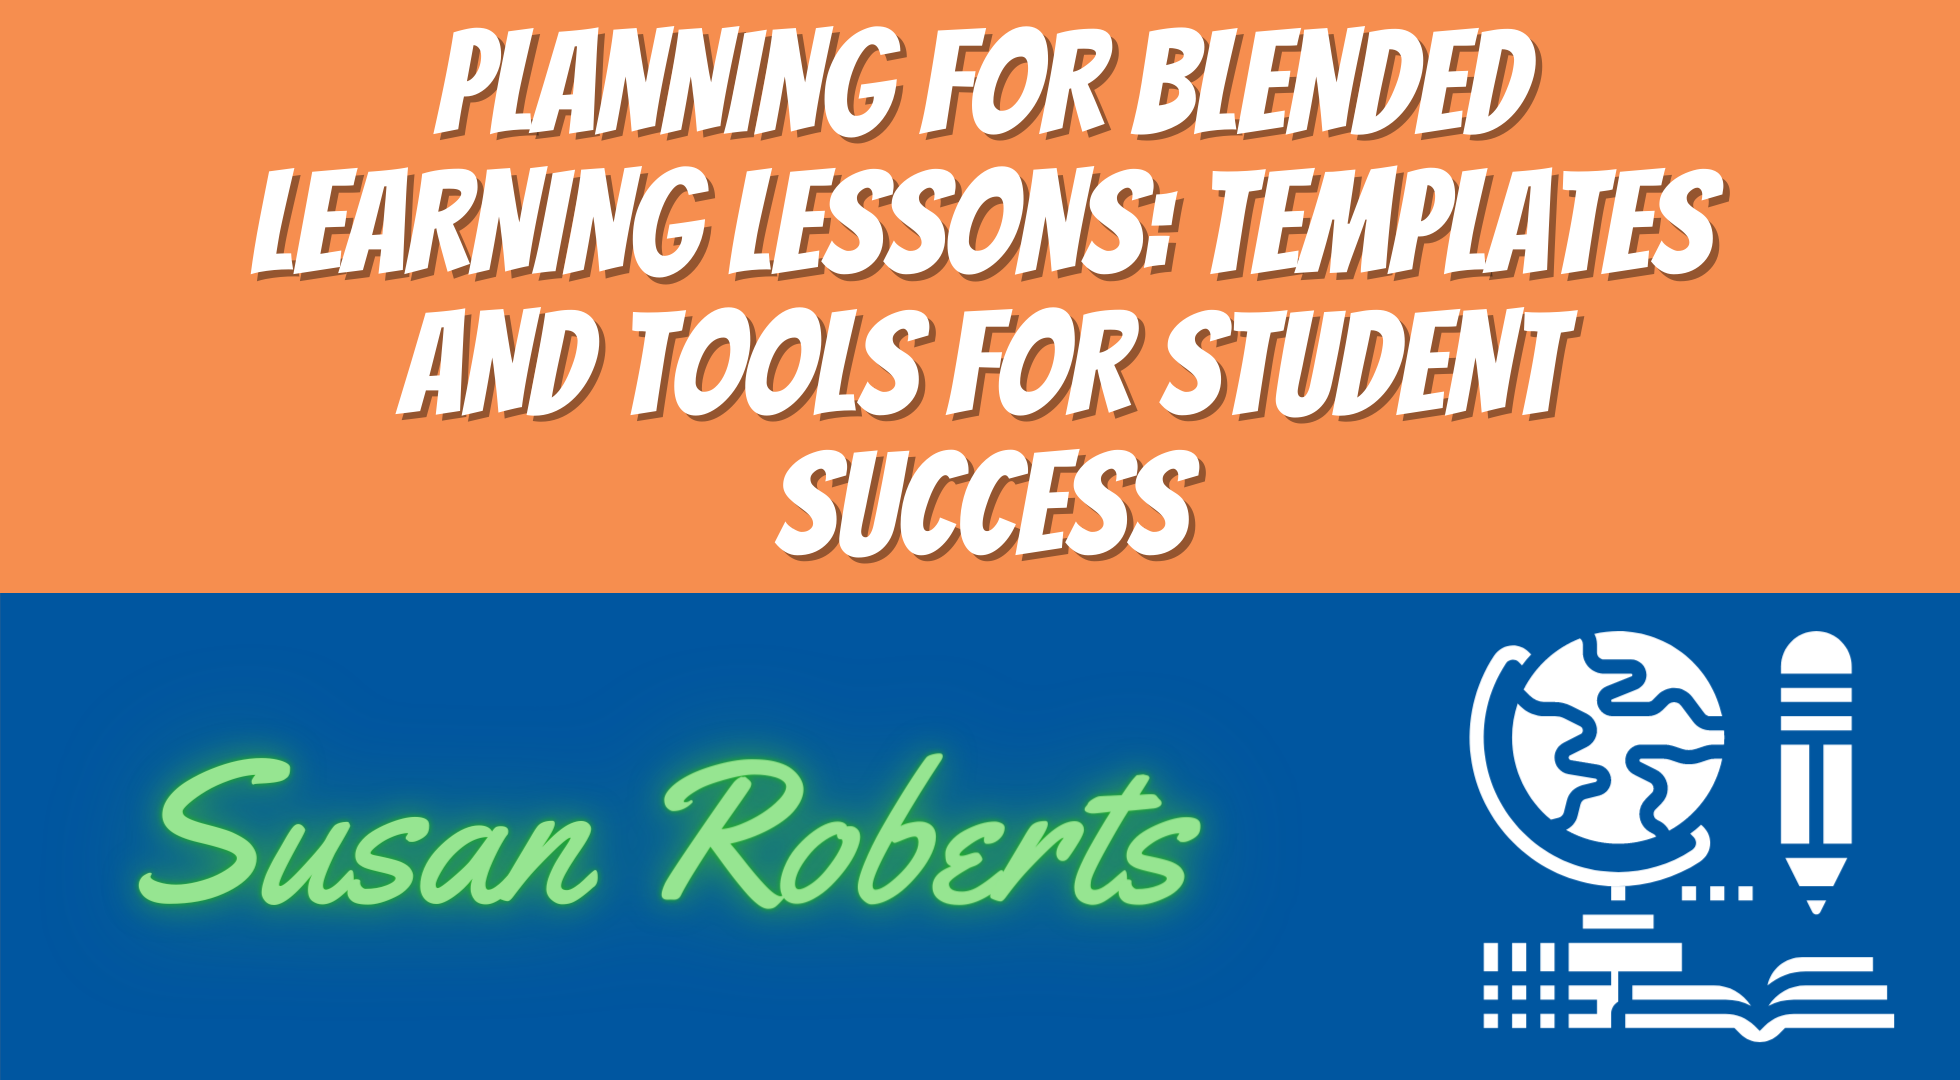 Planning for Blended Learning Lessons: Templates and Tools for Student Success